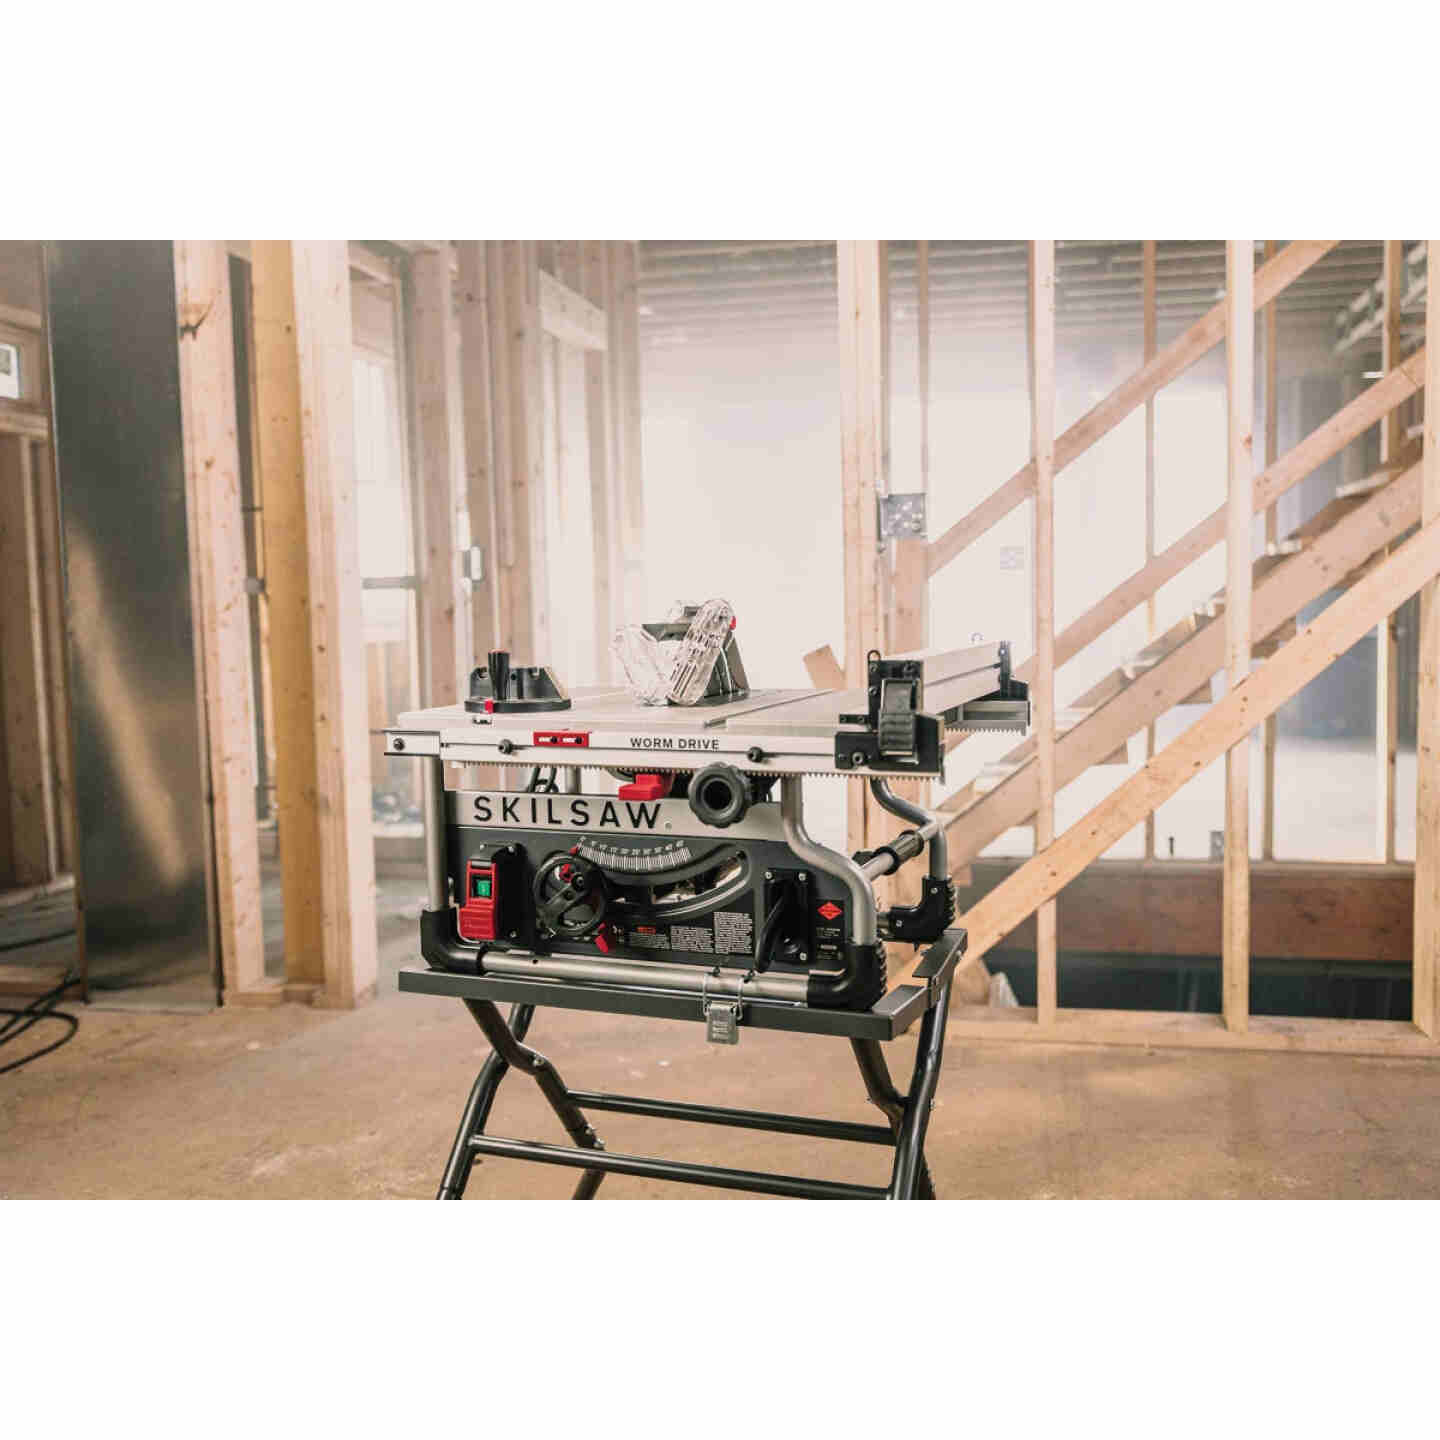 SKILSAW 15-Amp 8-1/4 In. Portable Worm Drive Table Saw Image 5